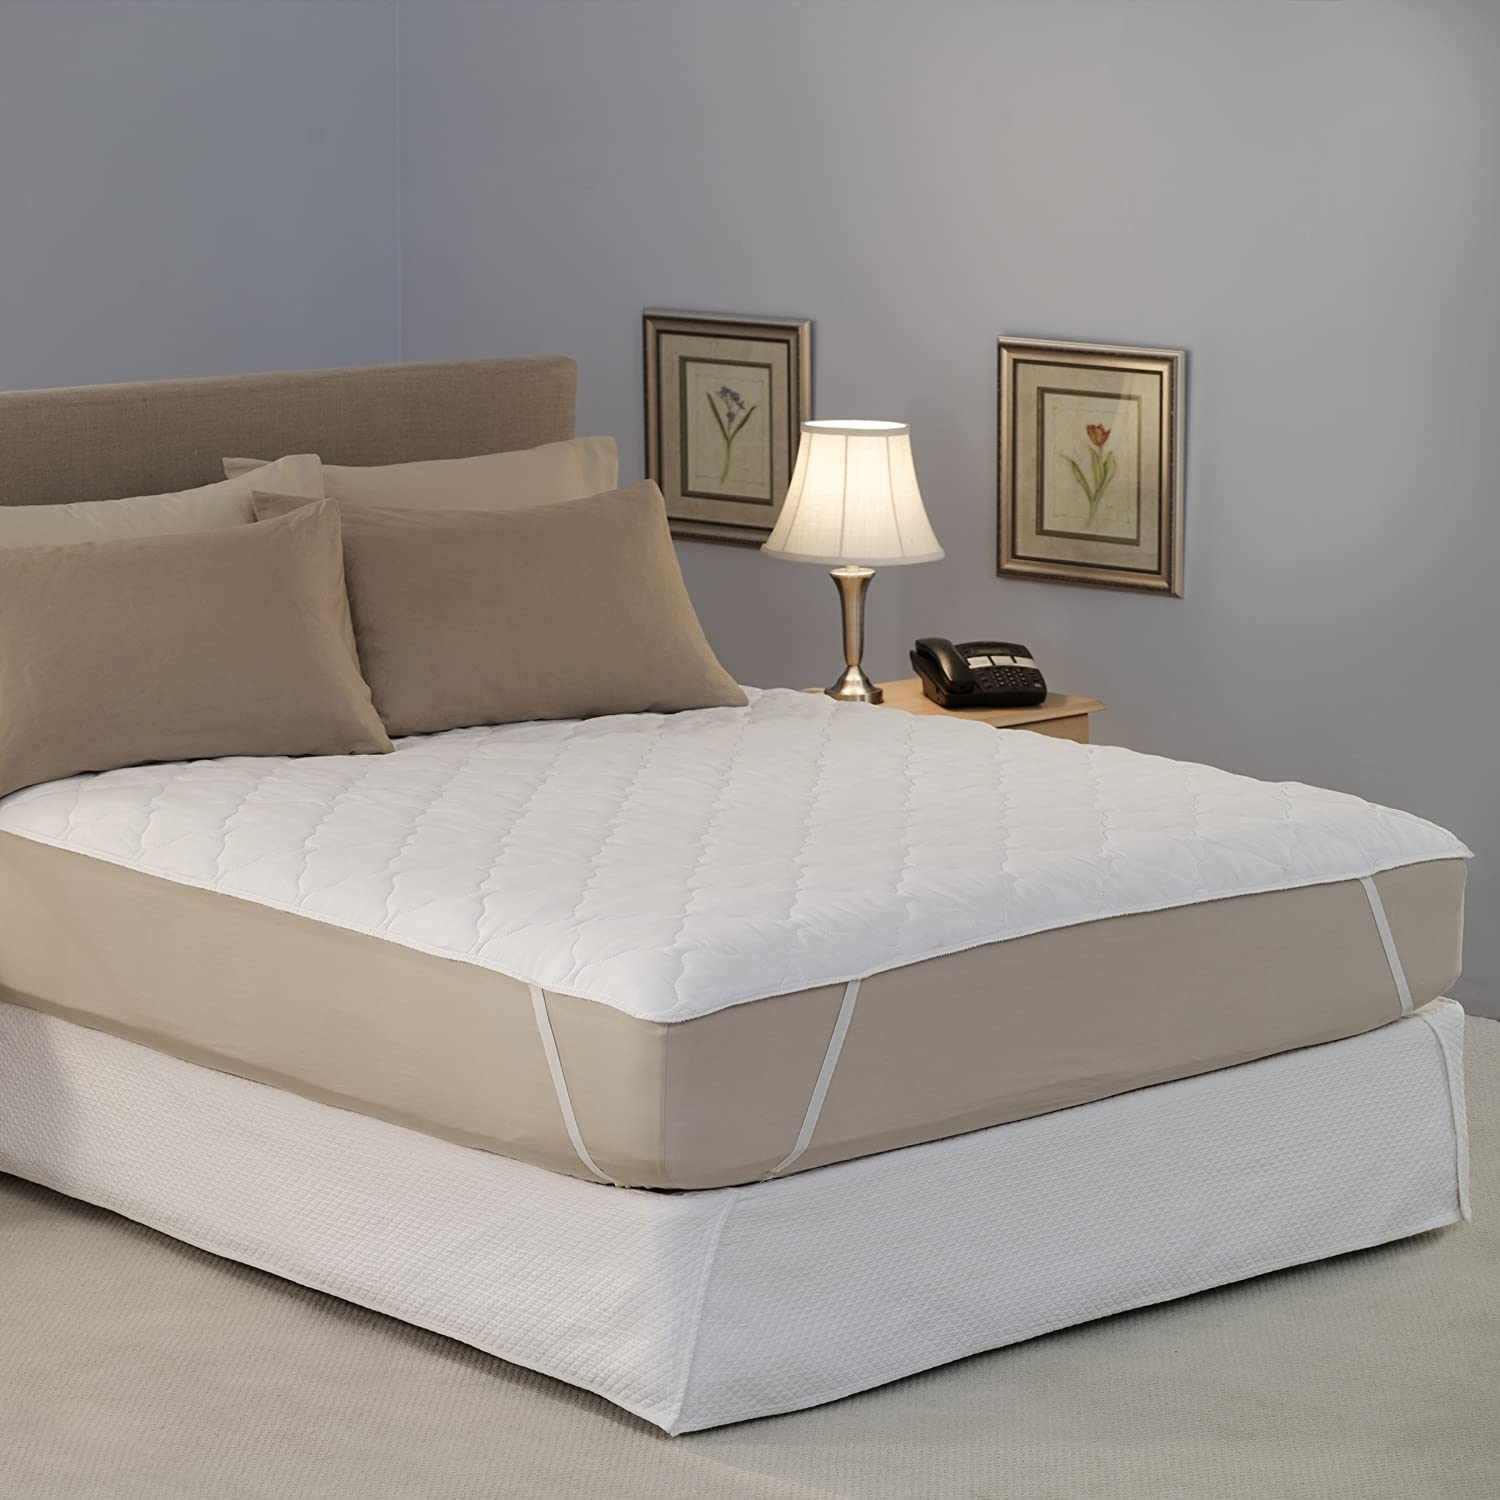 California King Quilted Waterbed Mattress Pad Pad Only Ebay